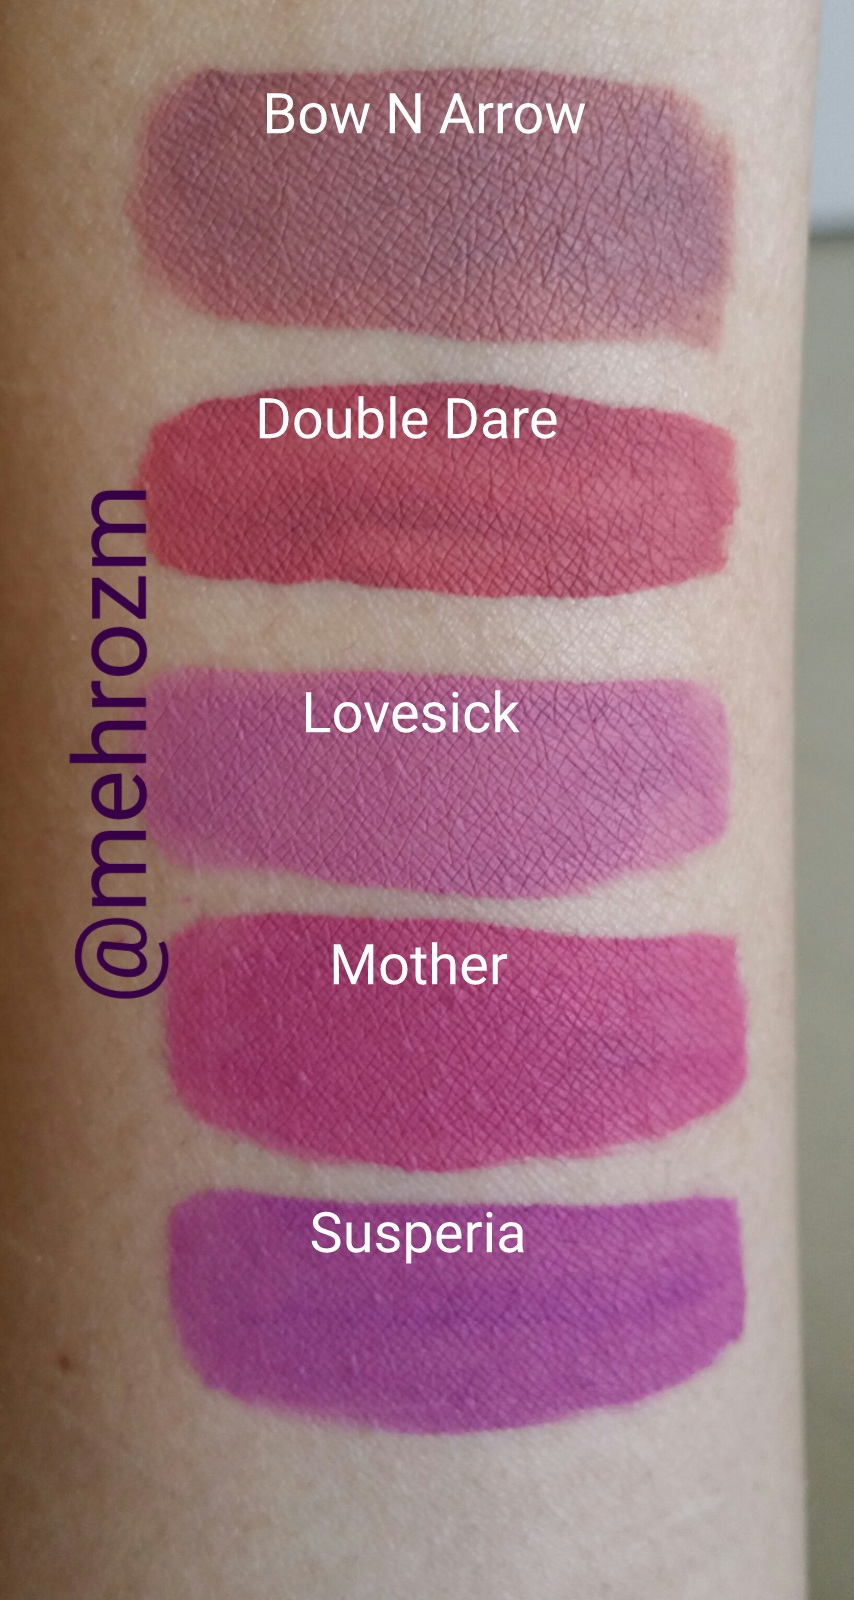 For the love of makeup and beauty kat von d everlasting liquid lipsticks